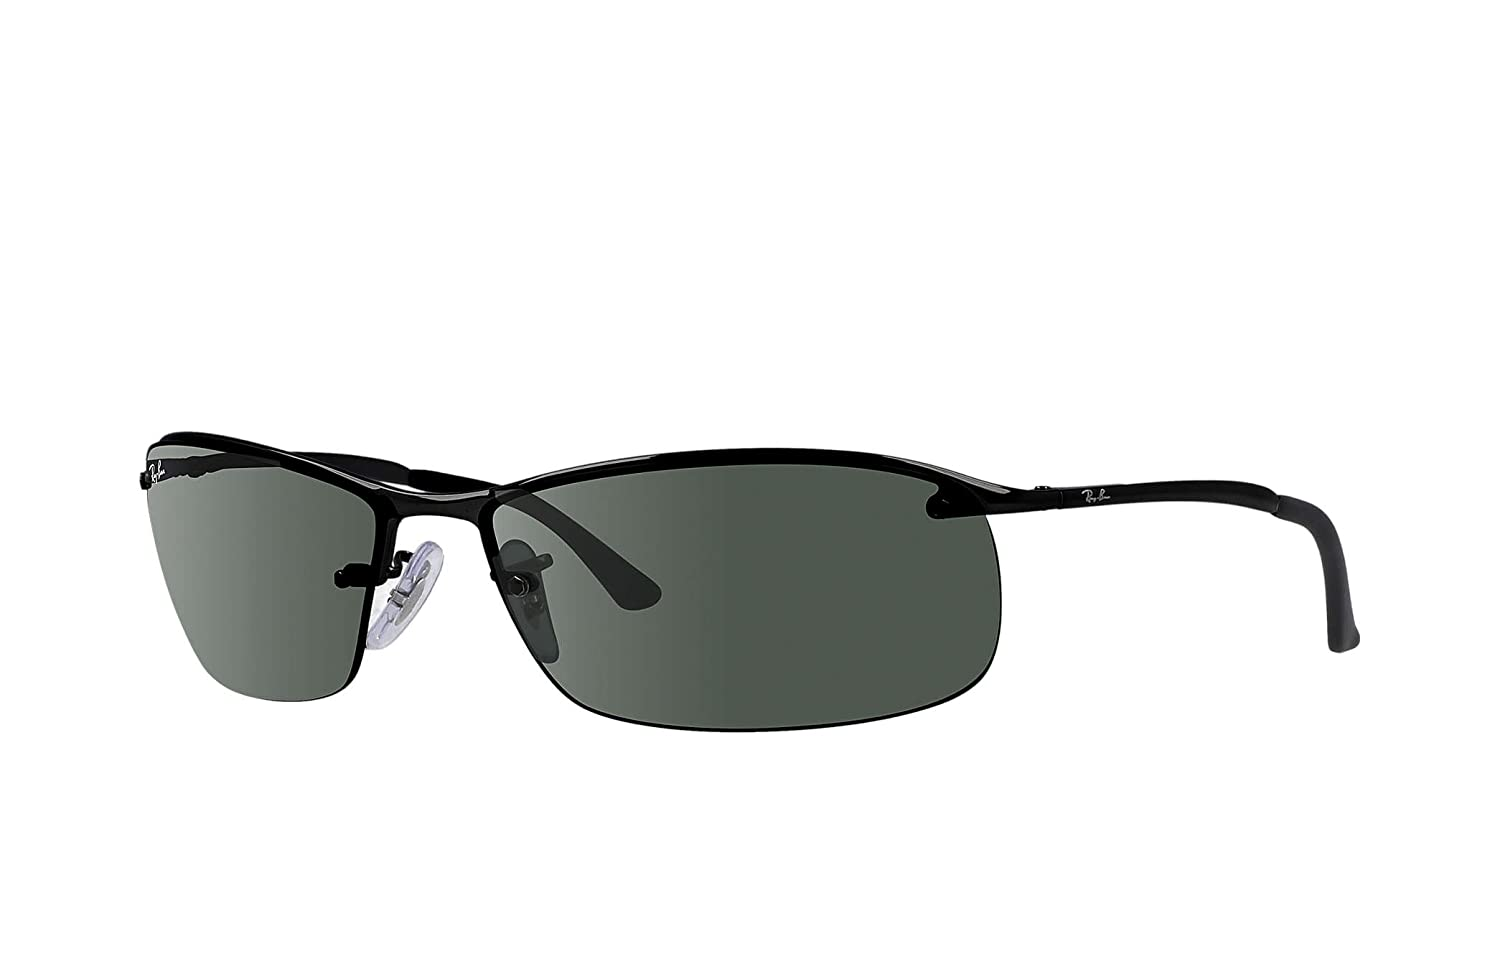 Amazon.com: Ray-Ban RB 3183 Barra Superior cuadrado anteojos ...